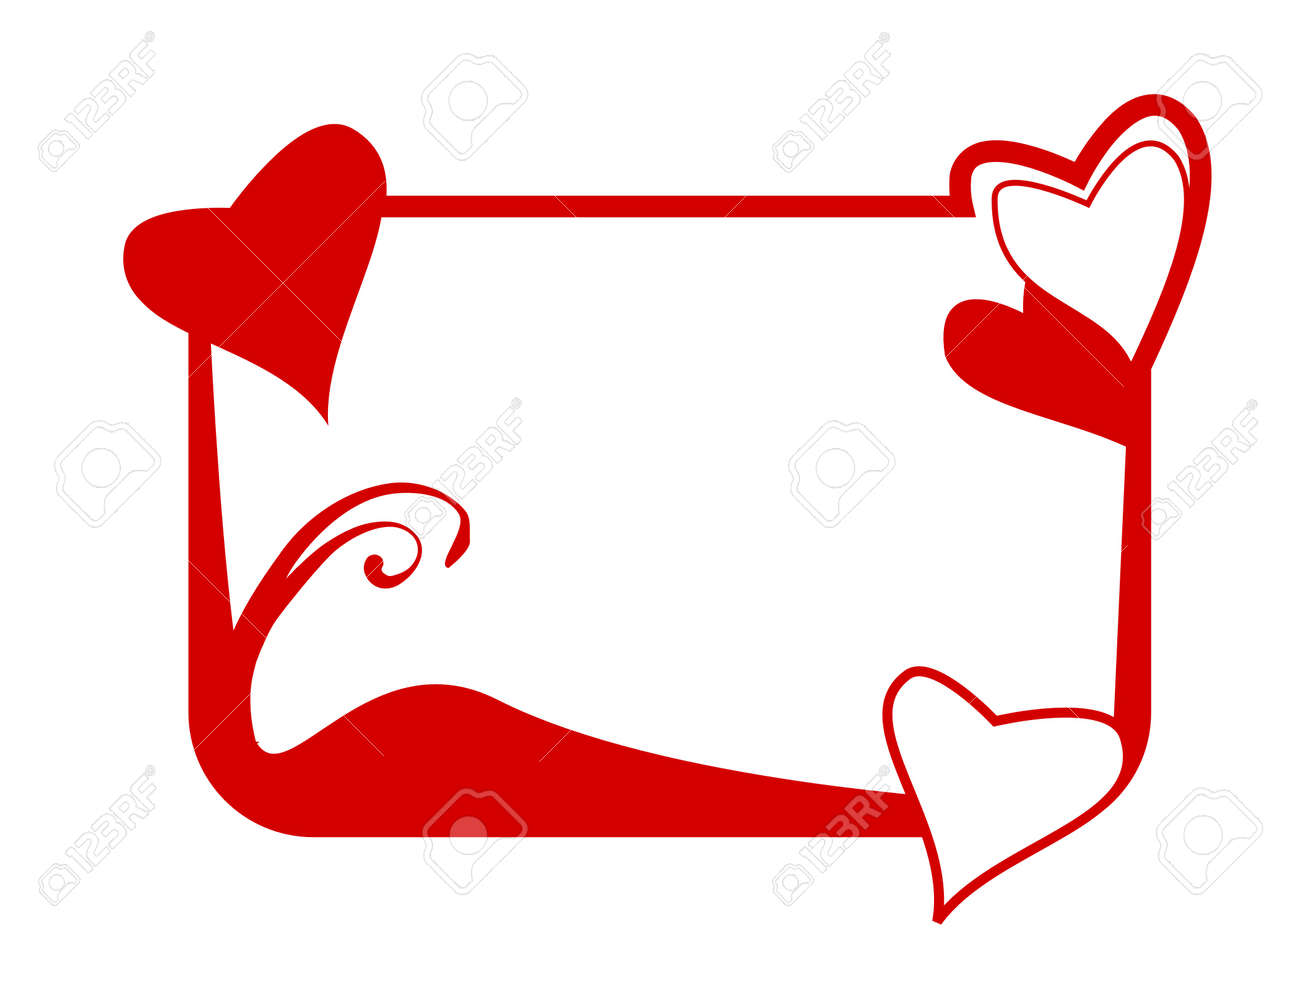 Frame With Heart Shapes Royalty Free Cliparts, Vectors, And Stock ...